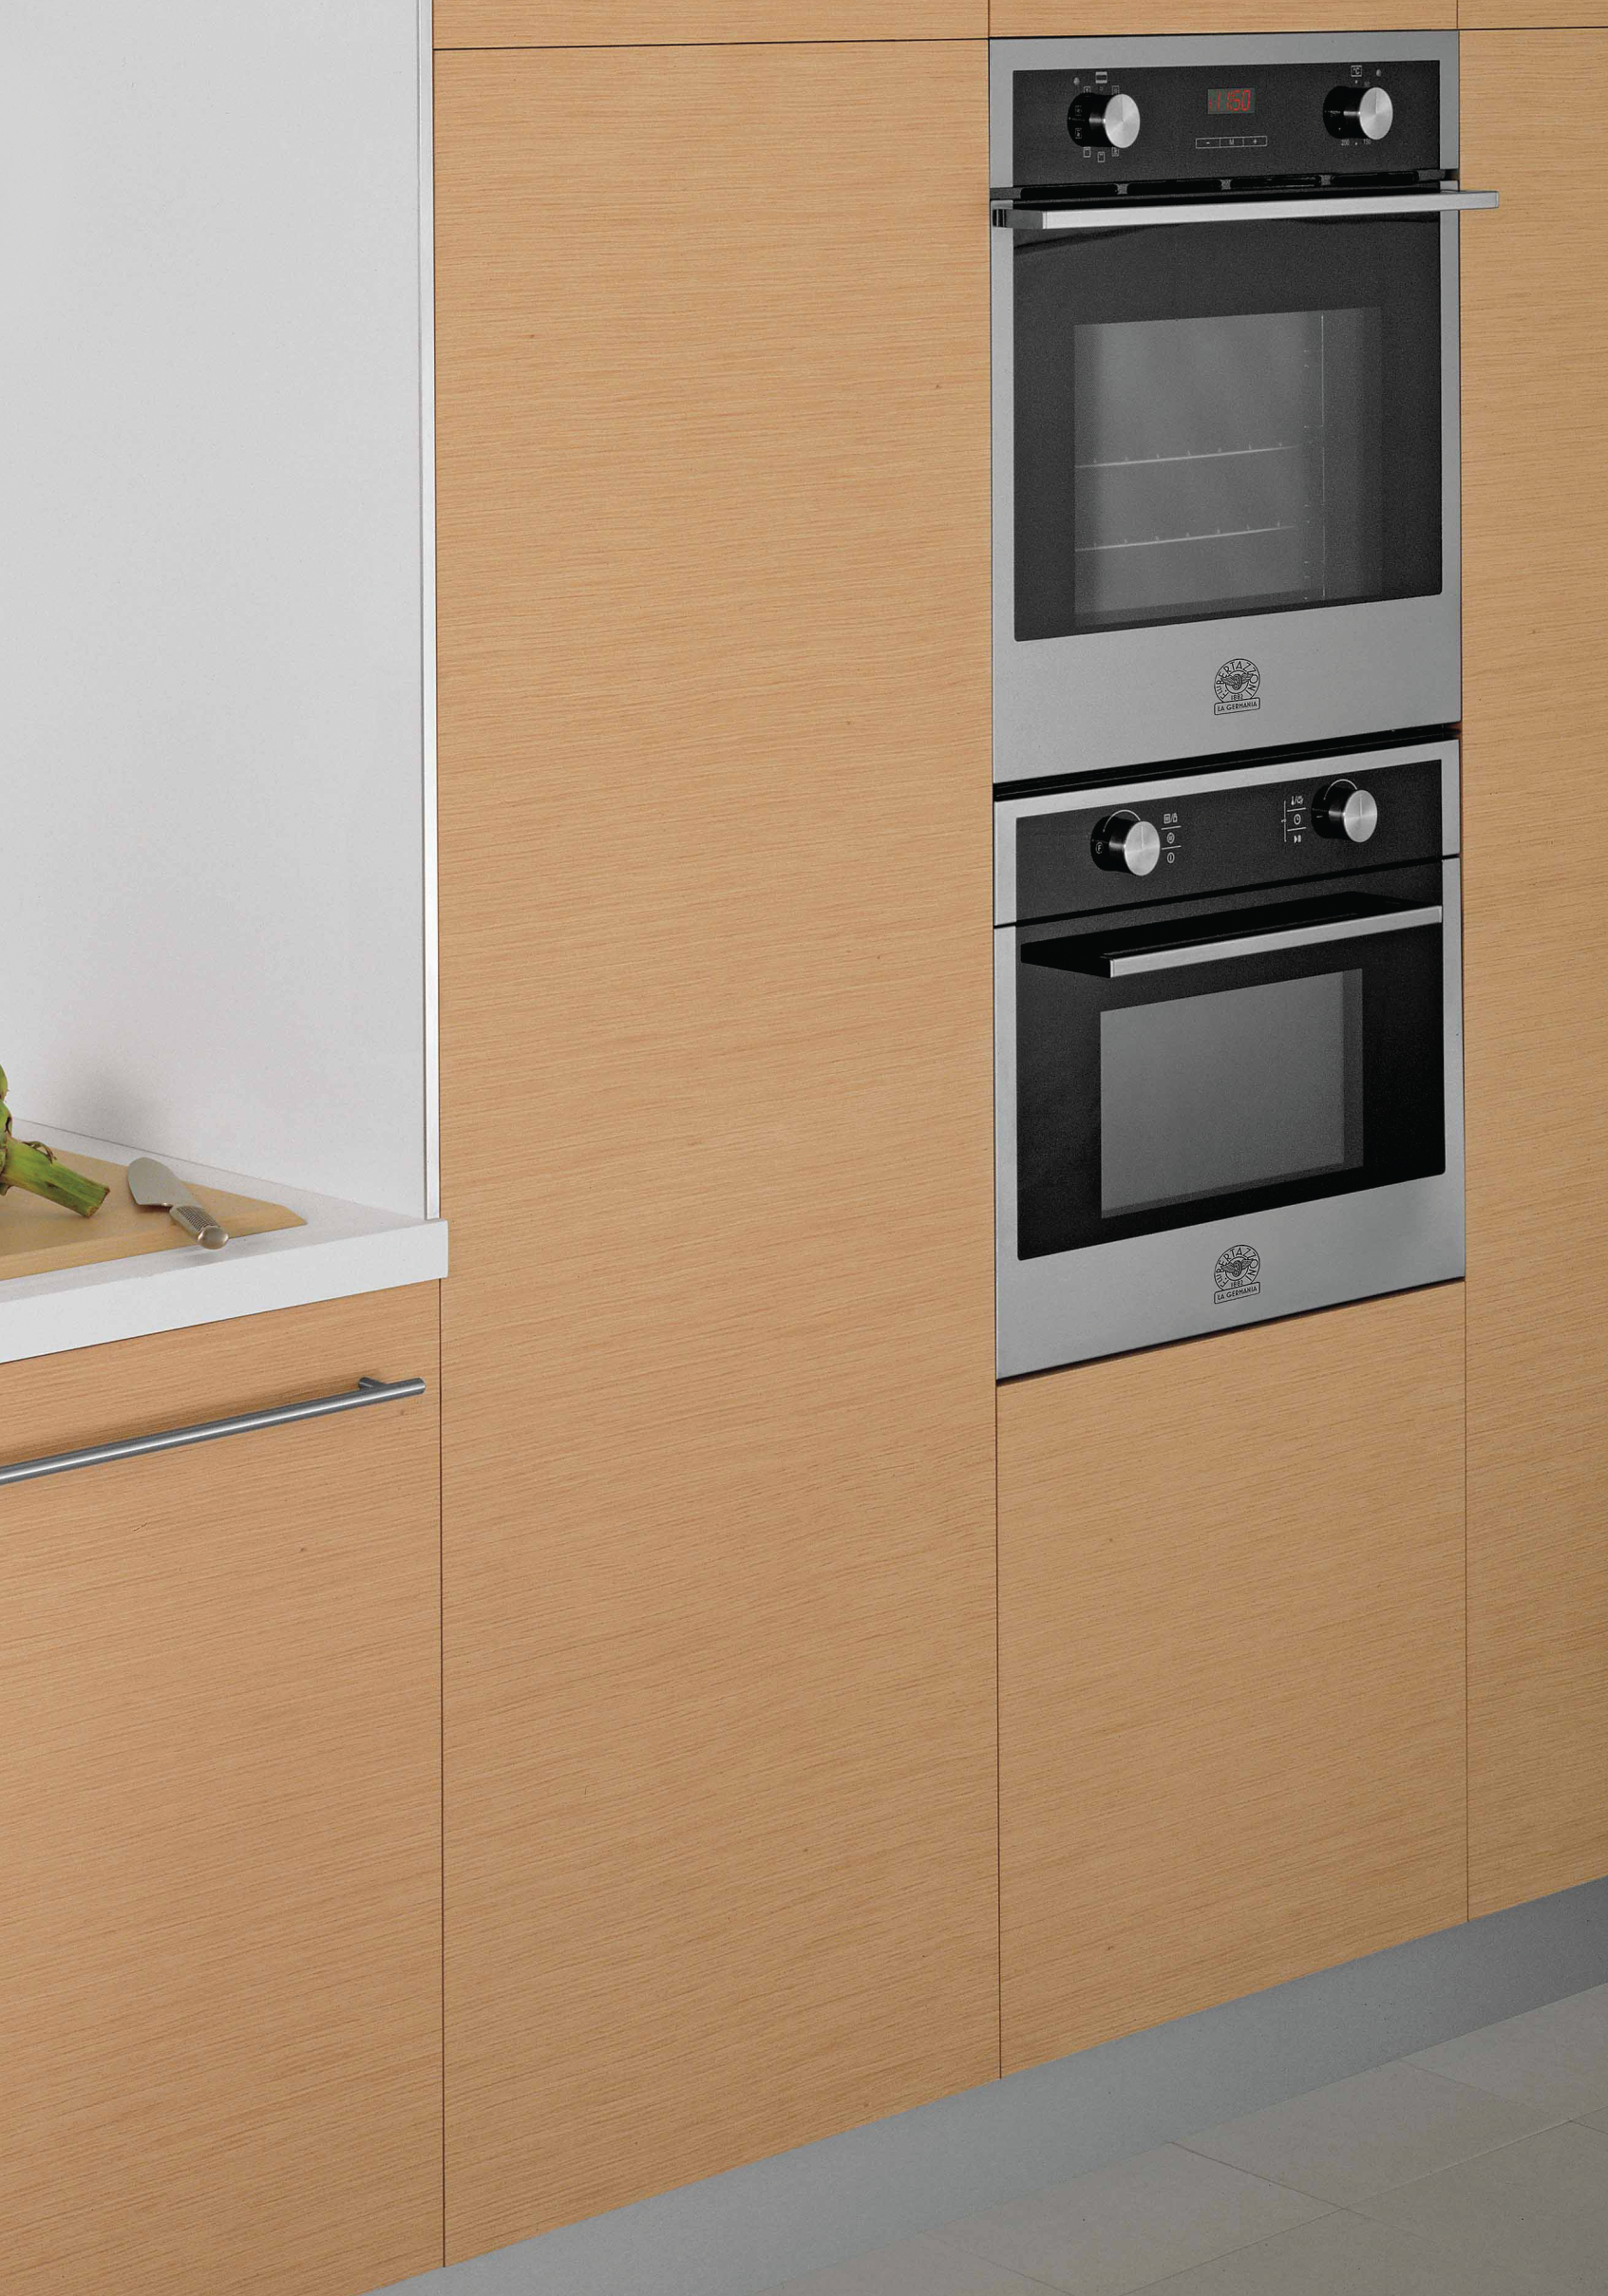 Advanced Technology Cookers Styled With Pleasing Modern Simplicity Featuring Black And Stainless Steel Finishes The Li Built In Ovens Hafele Fitted Furniture